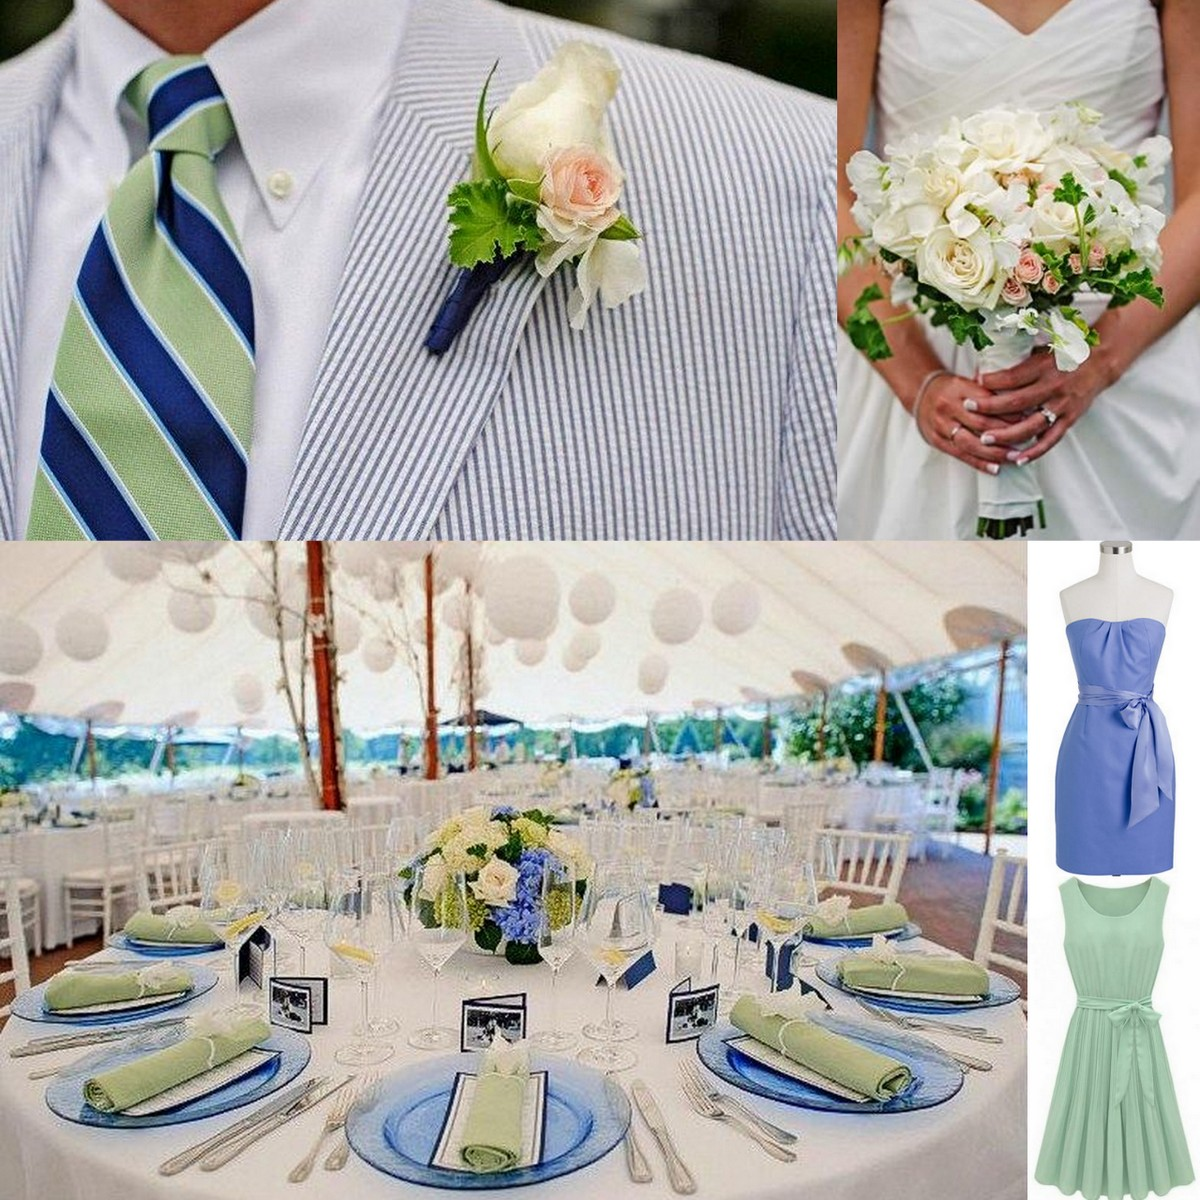 Featured image for 'Seafoam Green and Sky Blue-Real Wedding' article